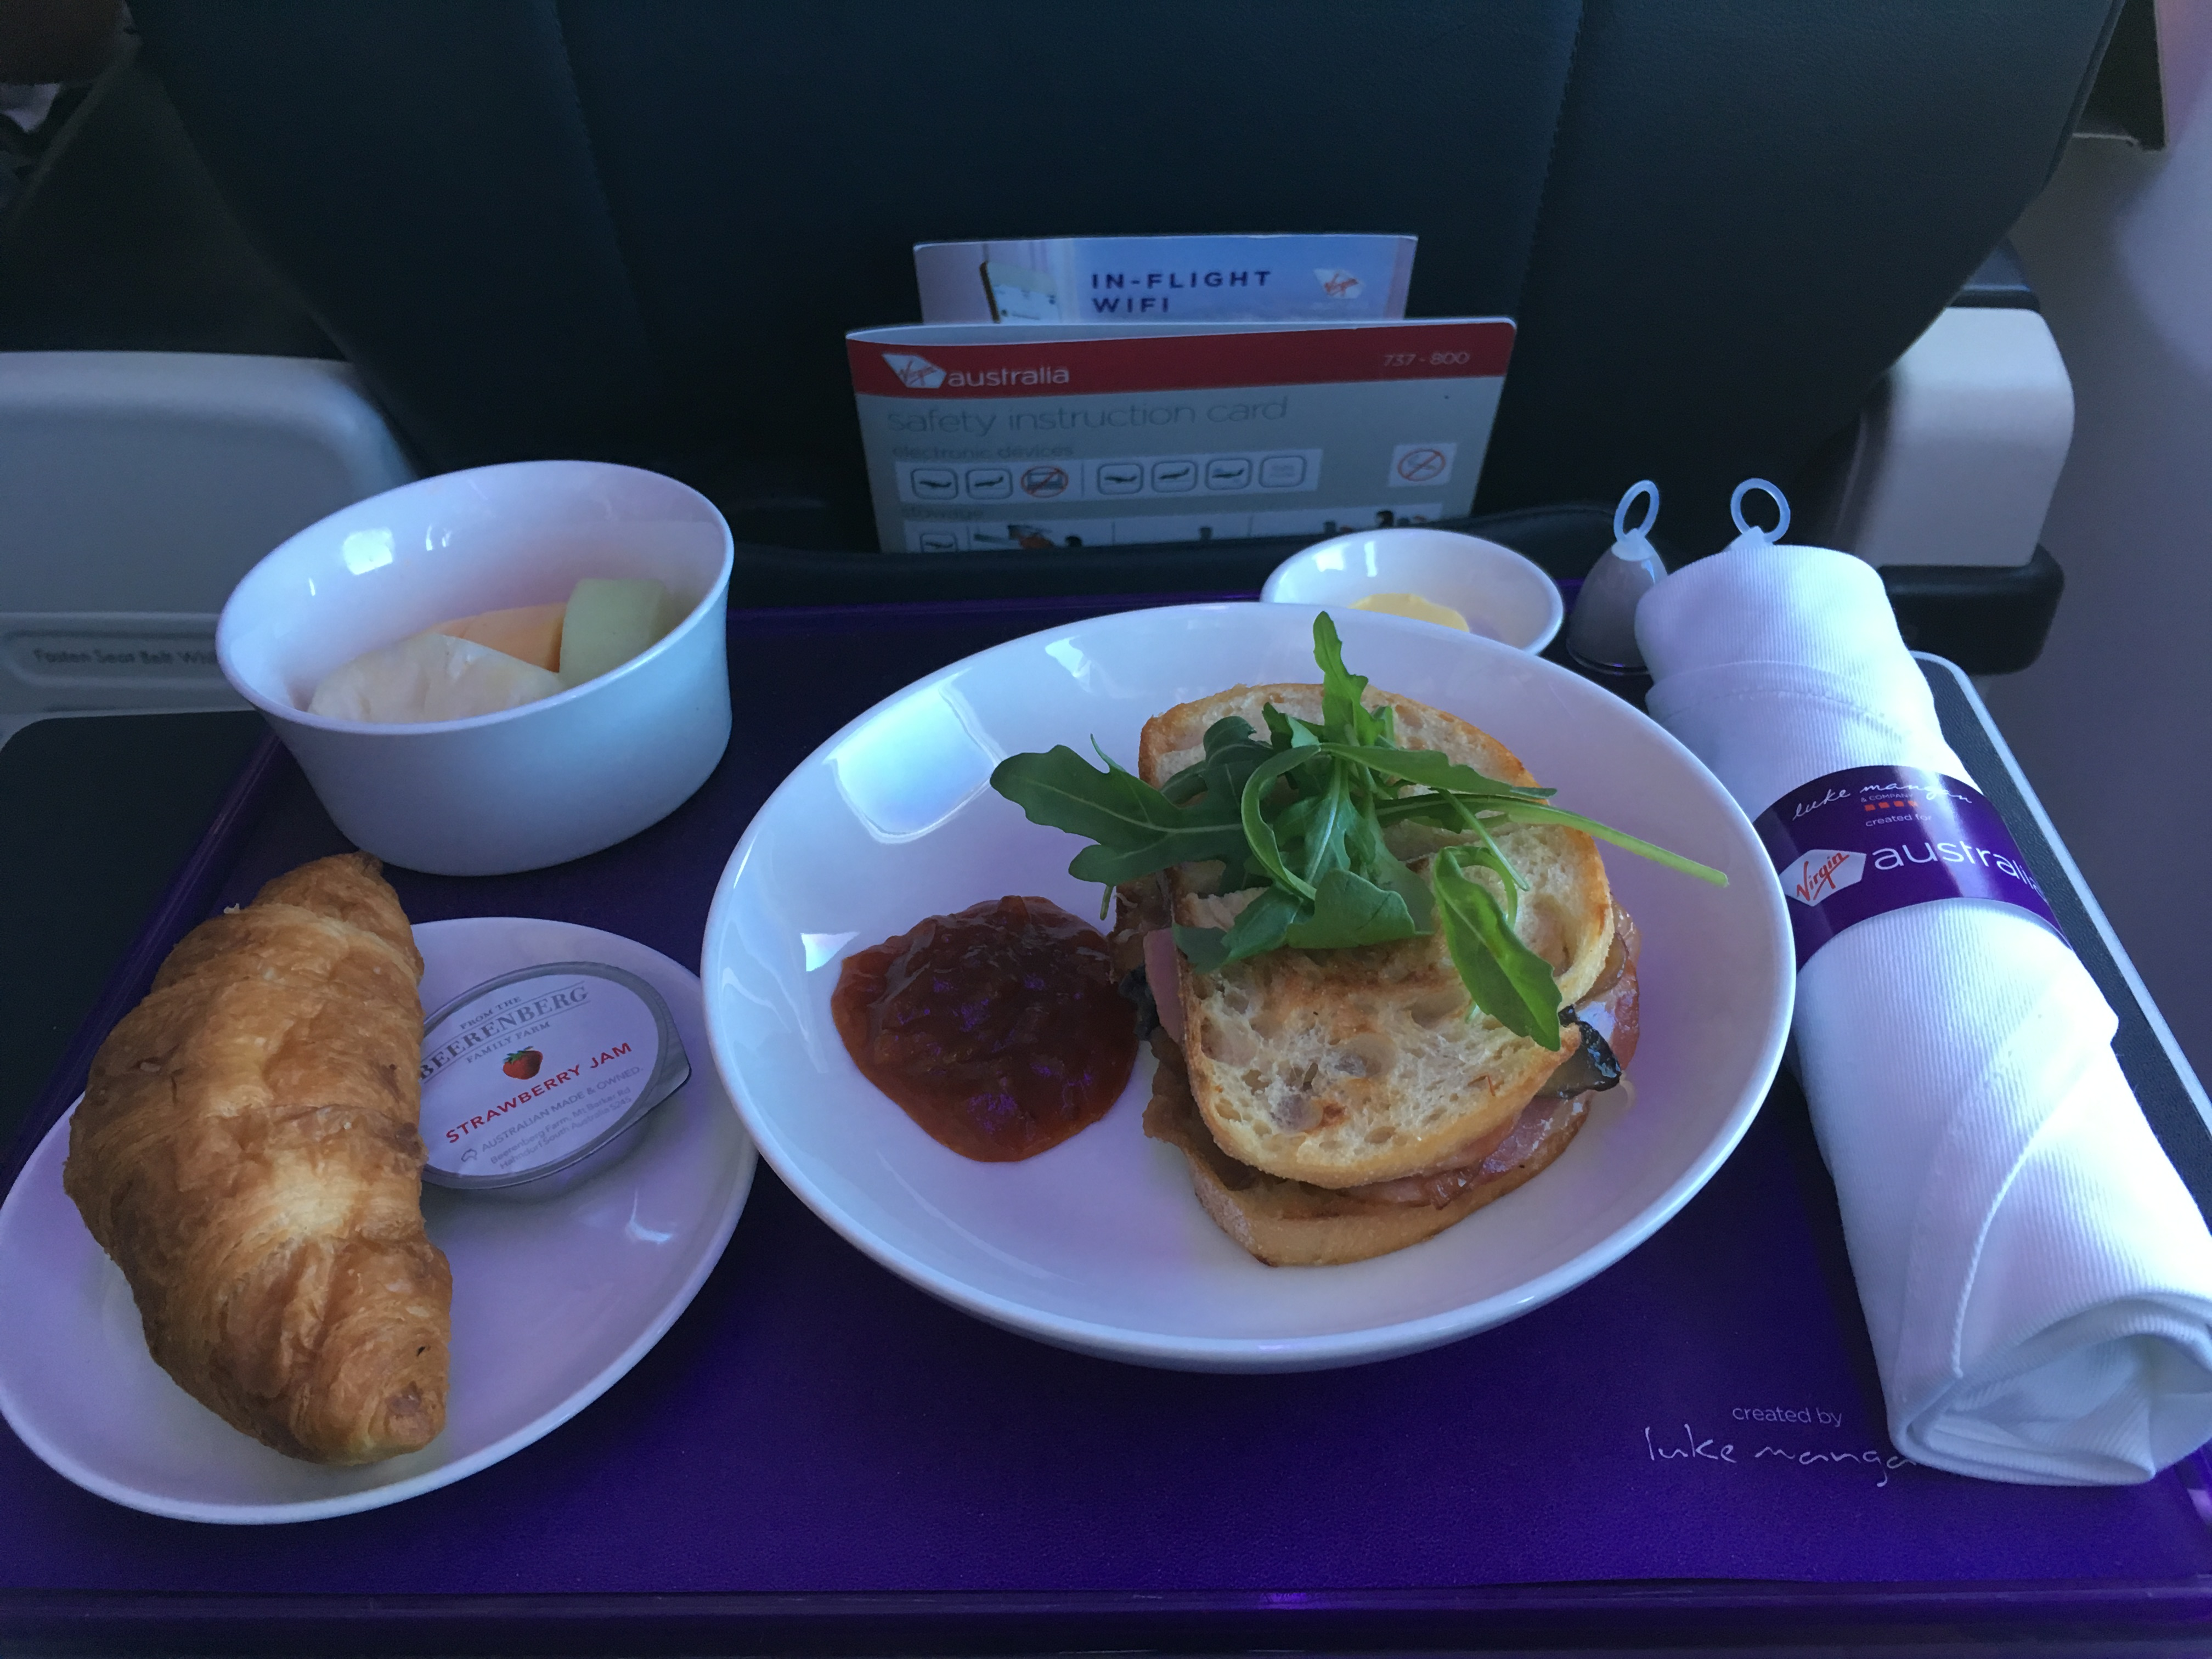 Virgin Australia Business Class breakfast